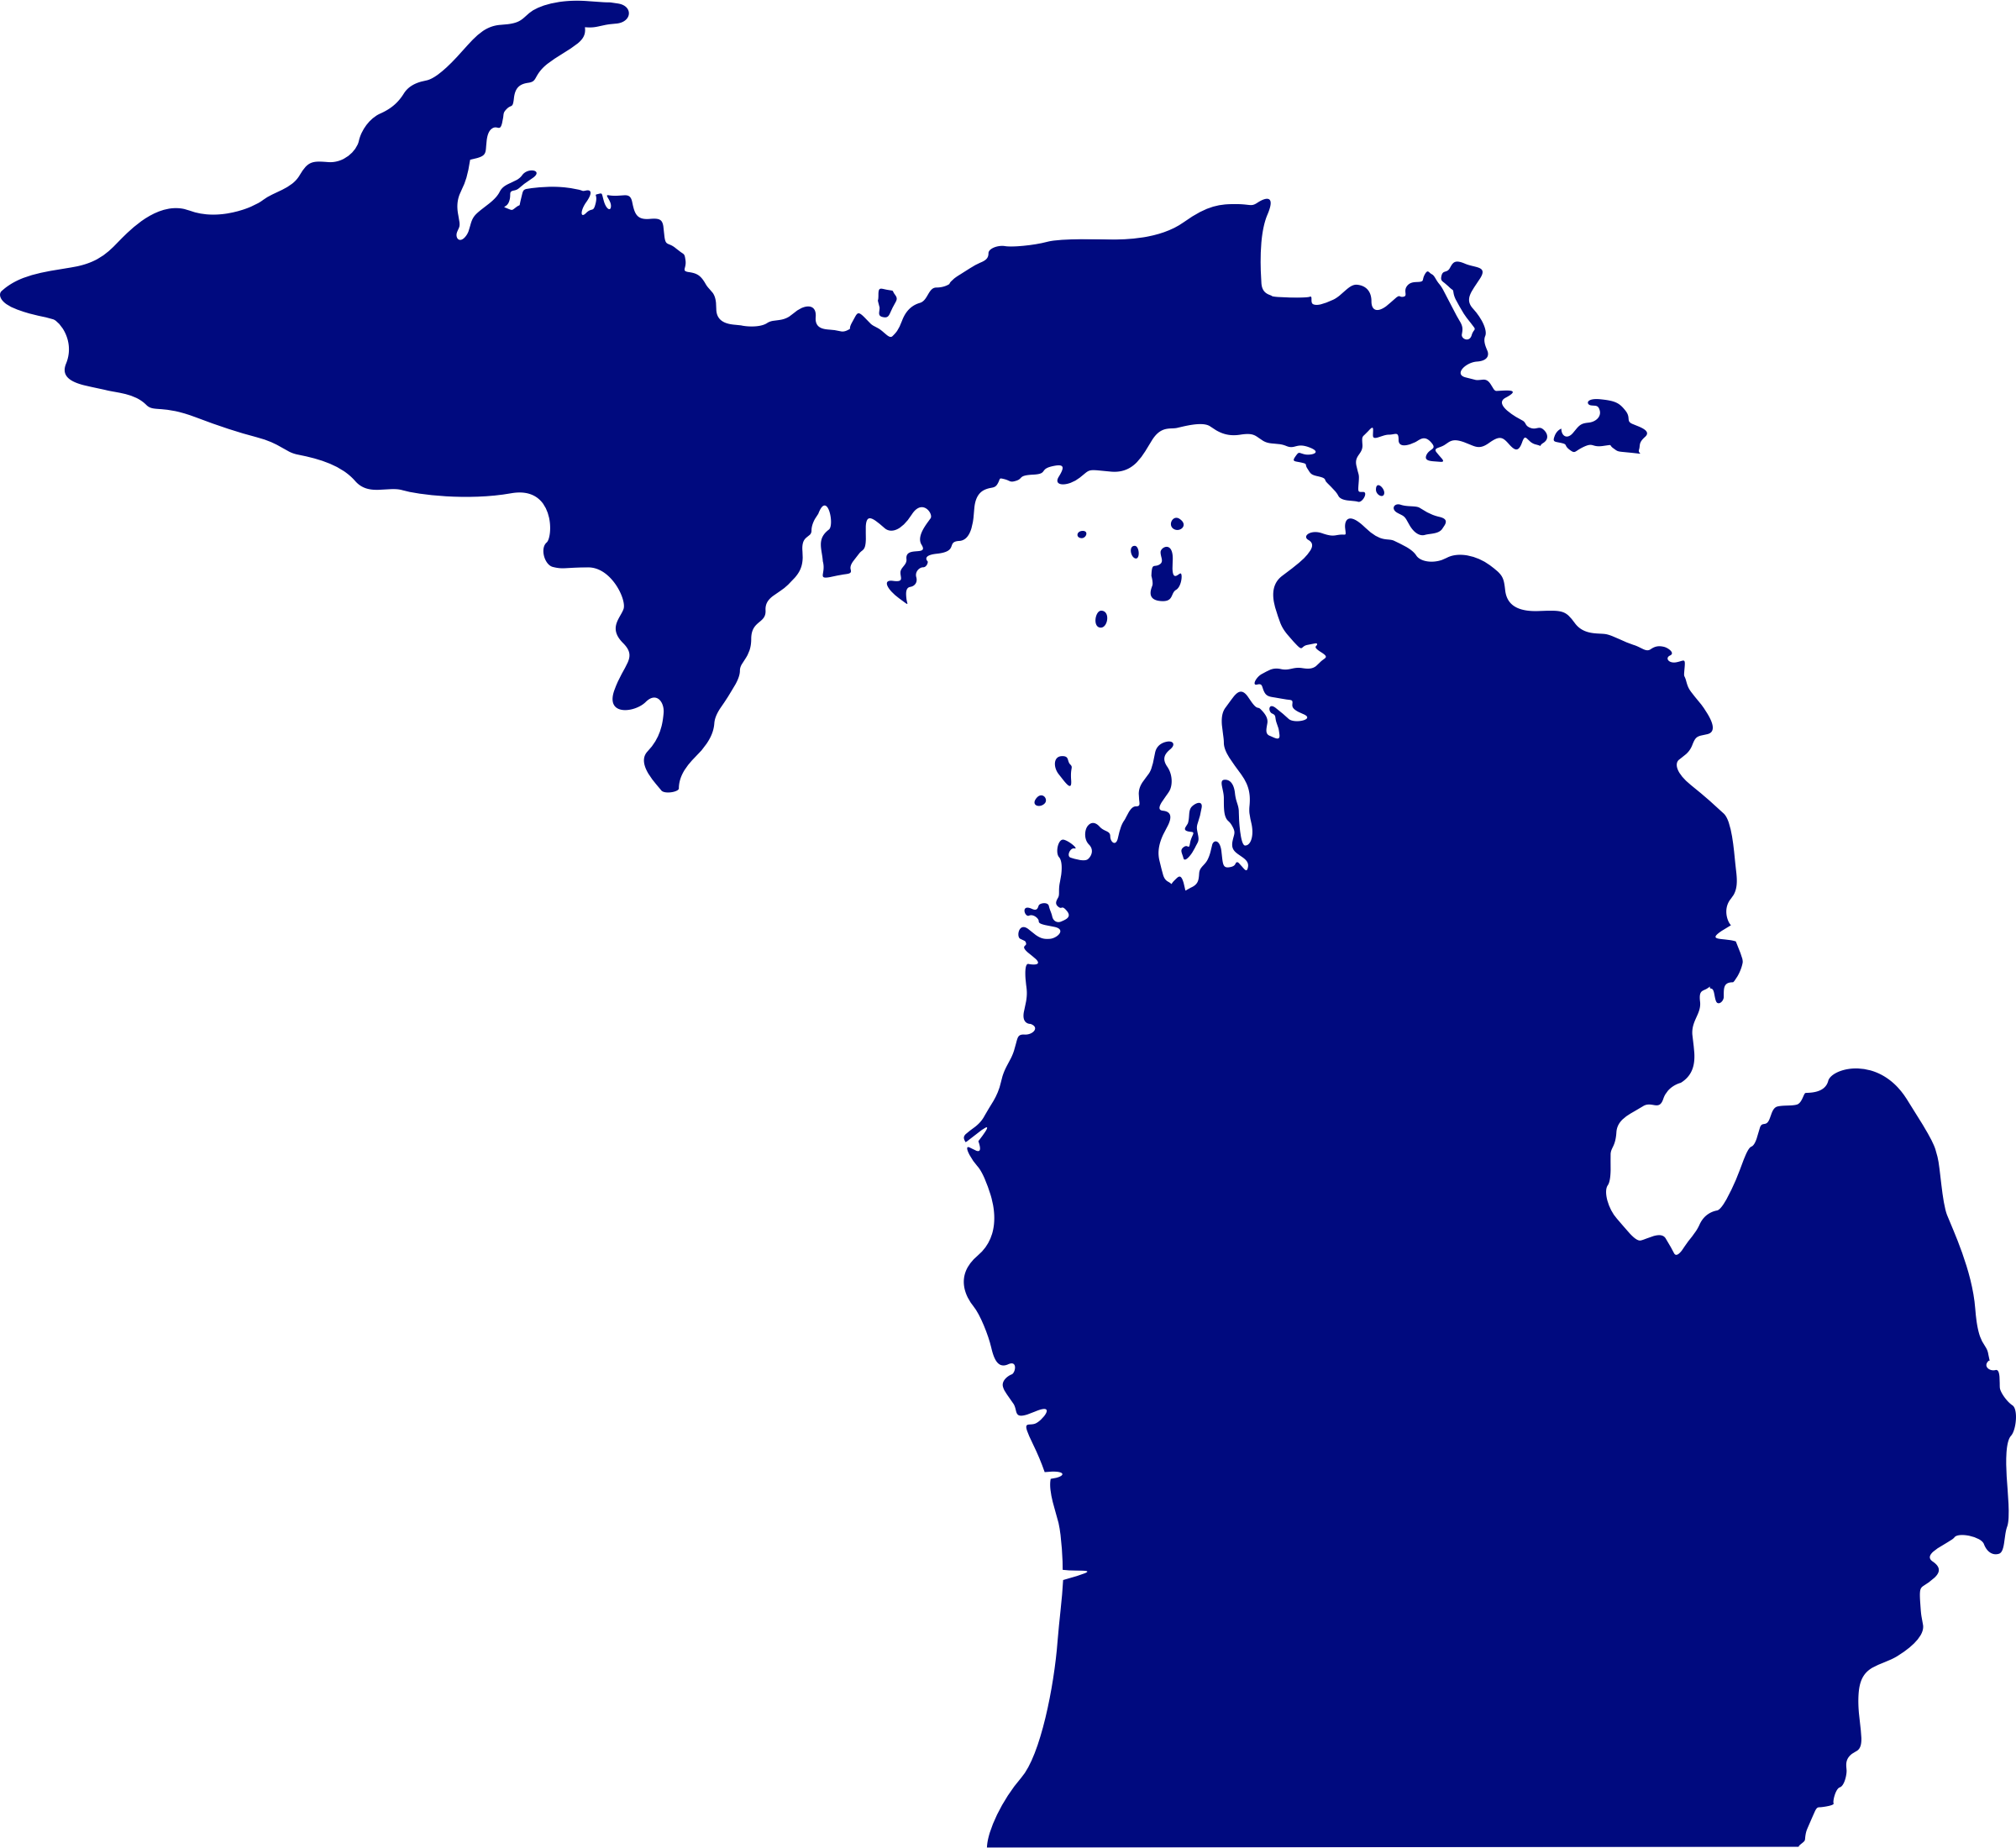 png library stock Michigan clipart clip art. State of icons png.